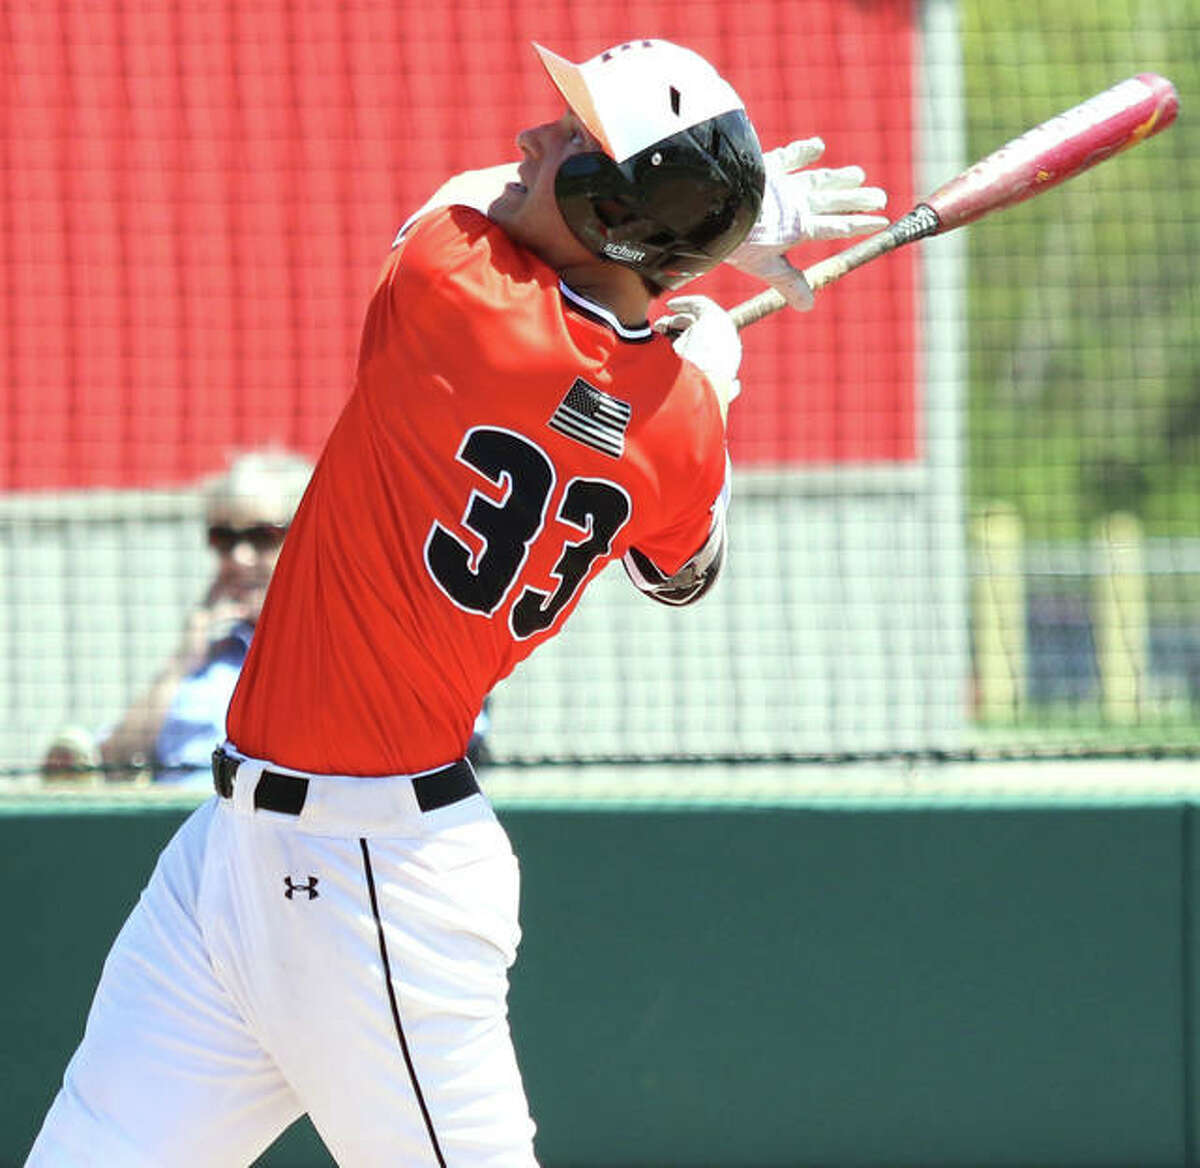 Edwardsville junior Drake Westcott had two home runs and six RBIs in Saturday's sectional championship game victory over Normal West at Illinois Wesleyan in Bloomington.